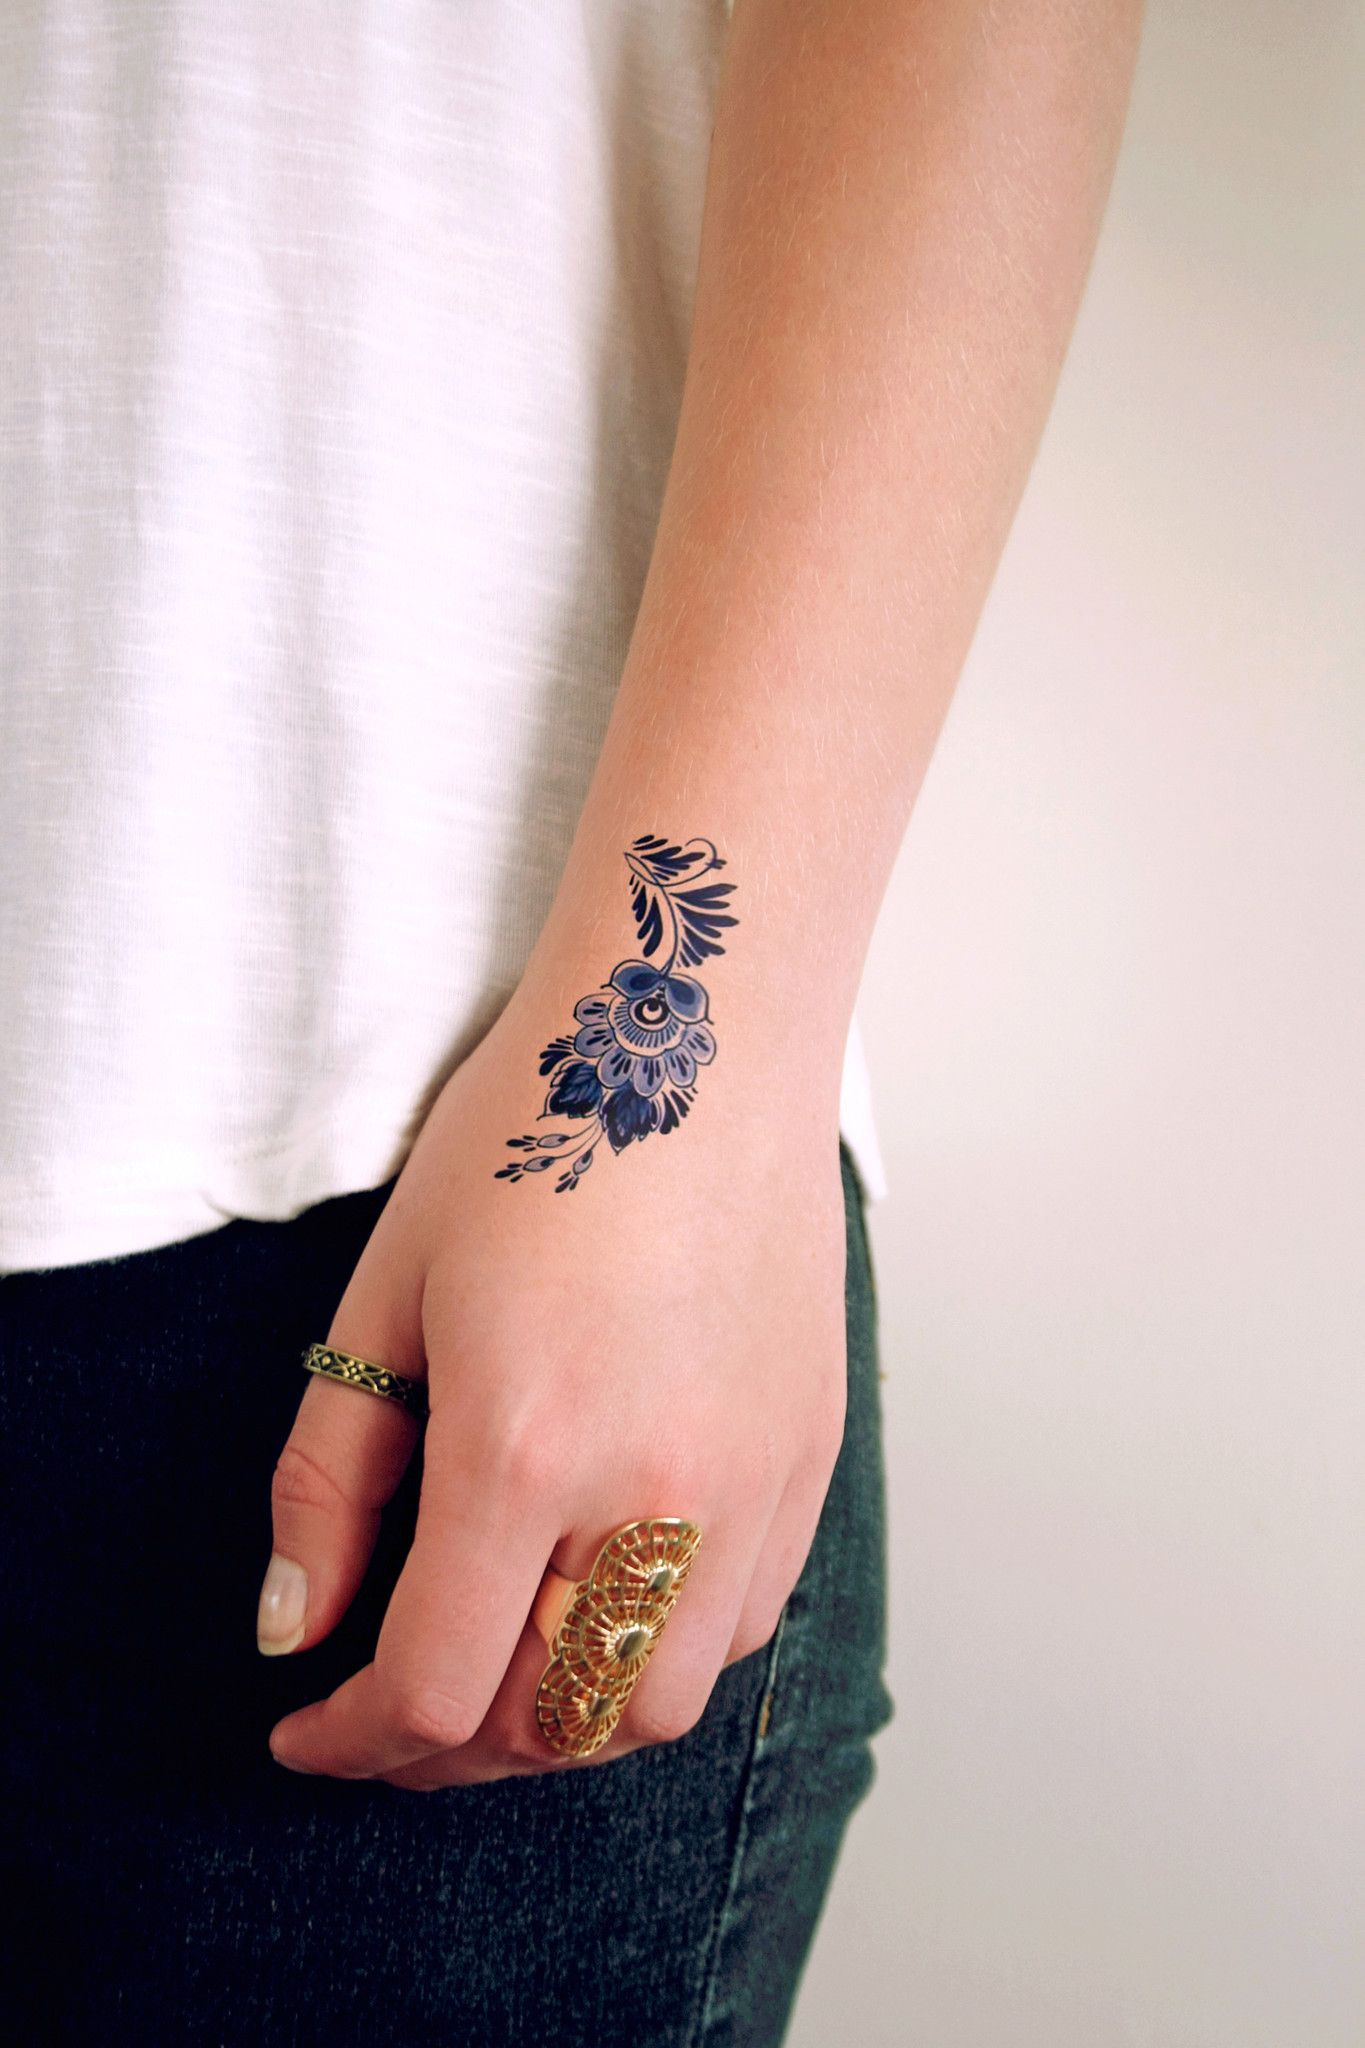 Small Delft Blue Floral Tattoo Tattoos Blue Flower Ideas And Designs